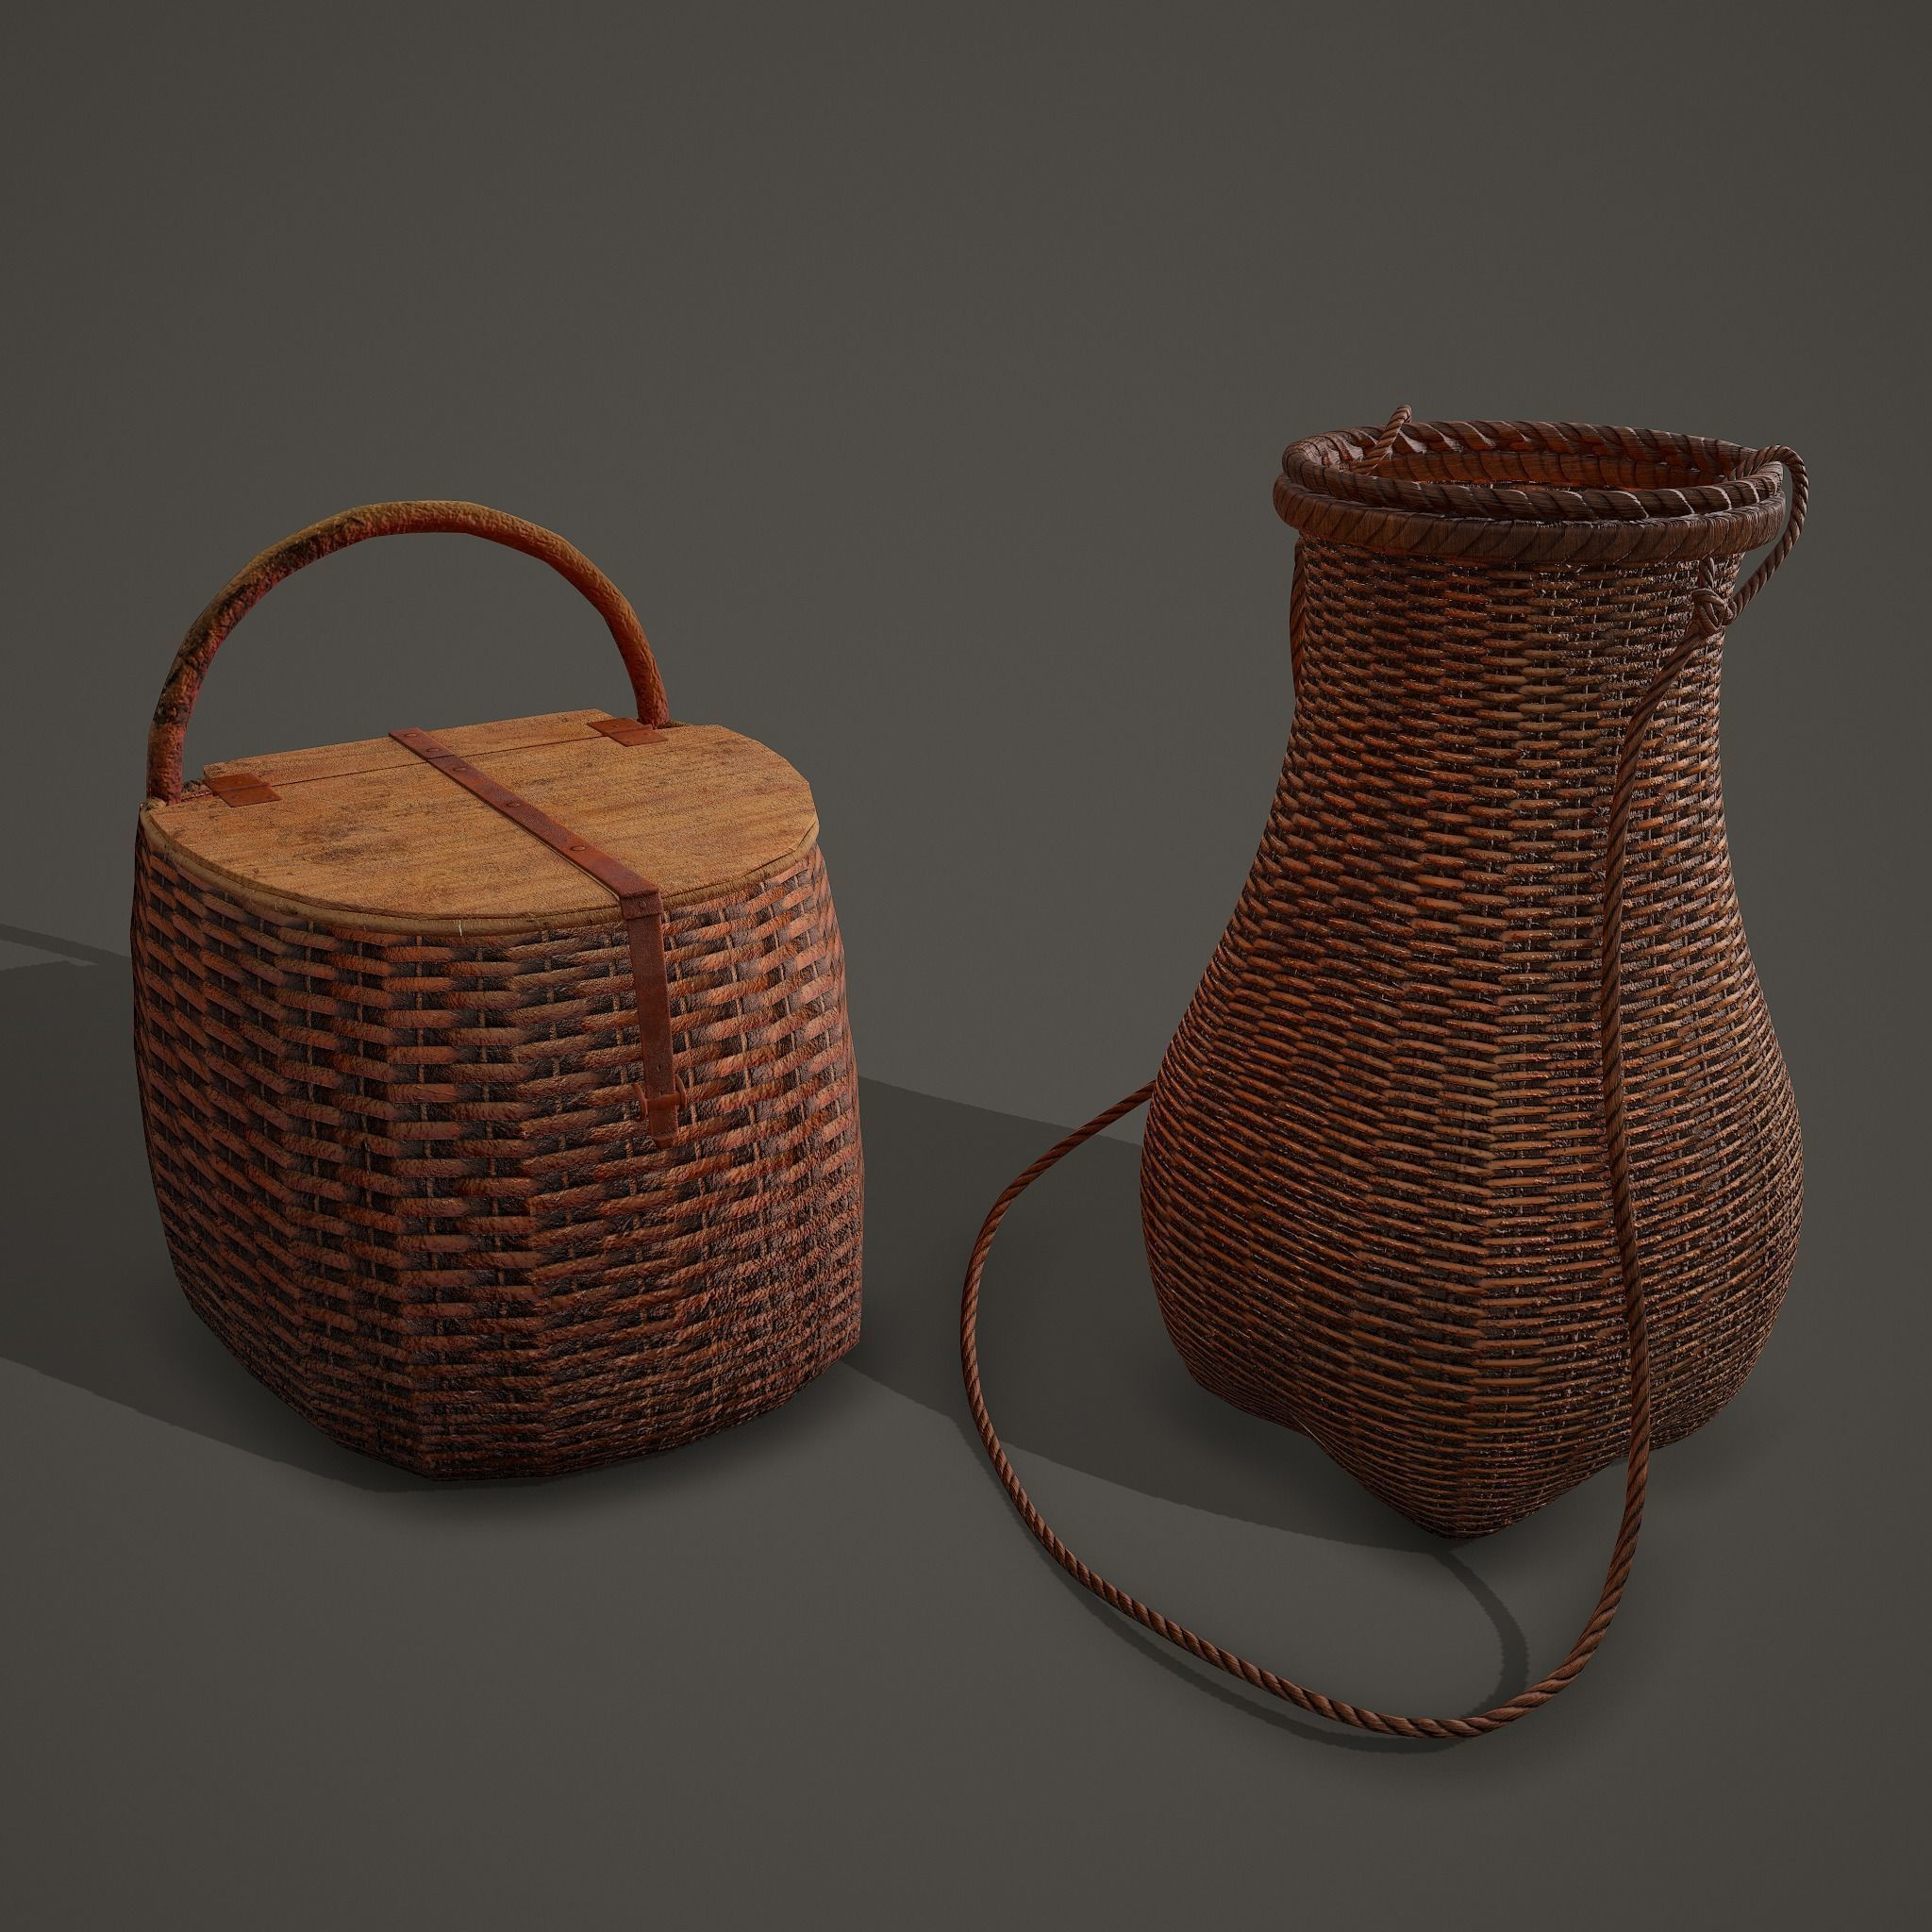 Medieval Style Wicker Basket One and Two